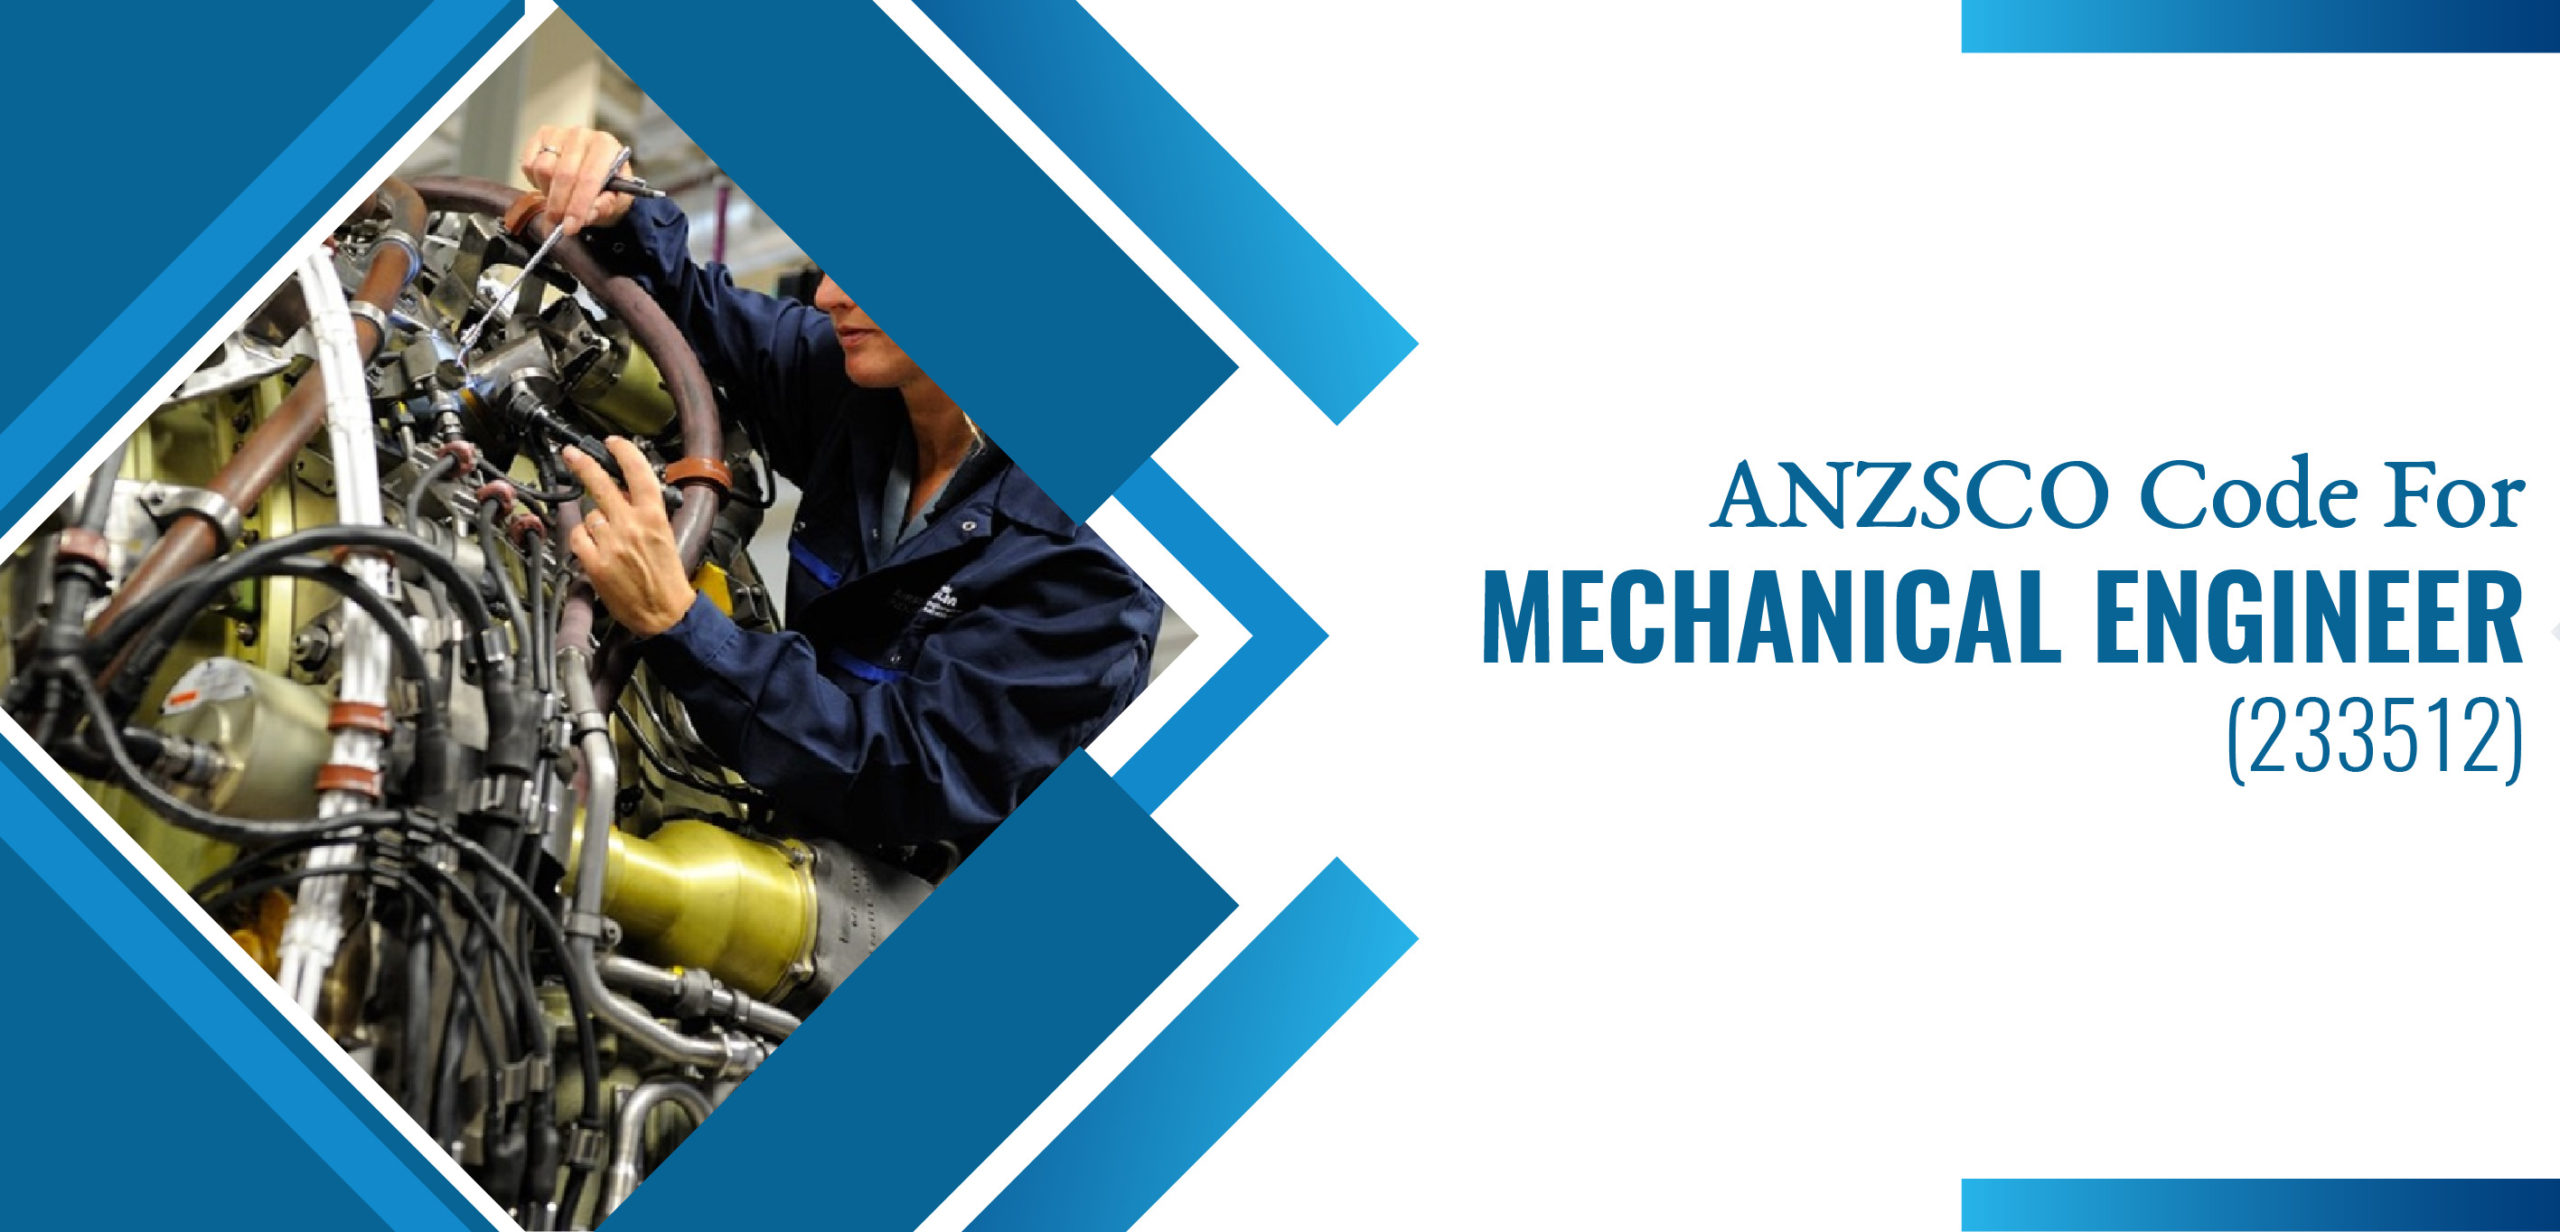 ANZSCO Code for Mechanical Engineer